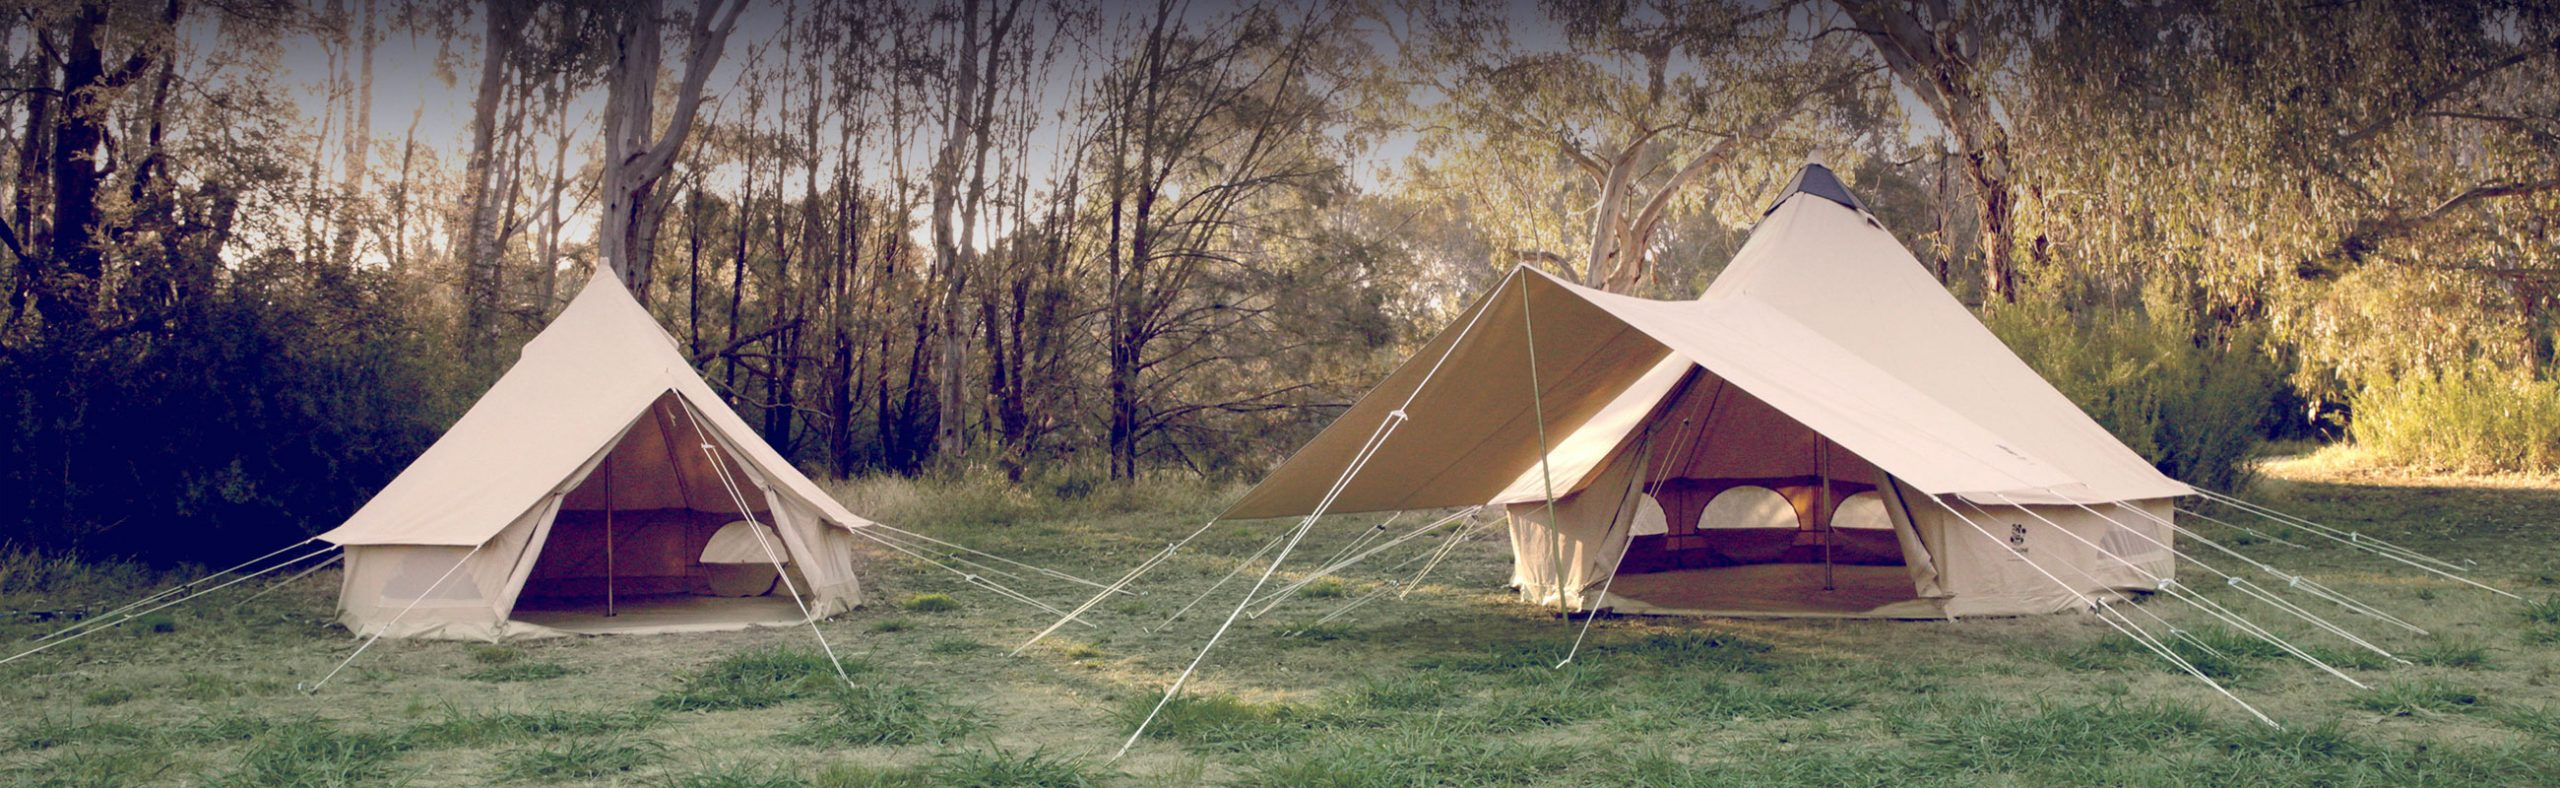 Psyclone high quality bell tents in bush setting for ultimate camping experience